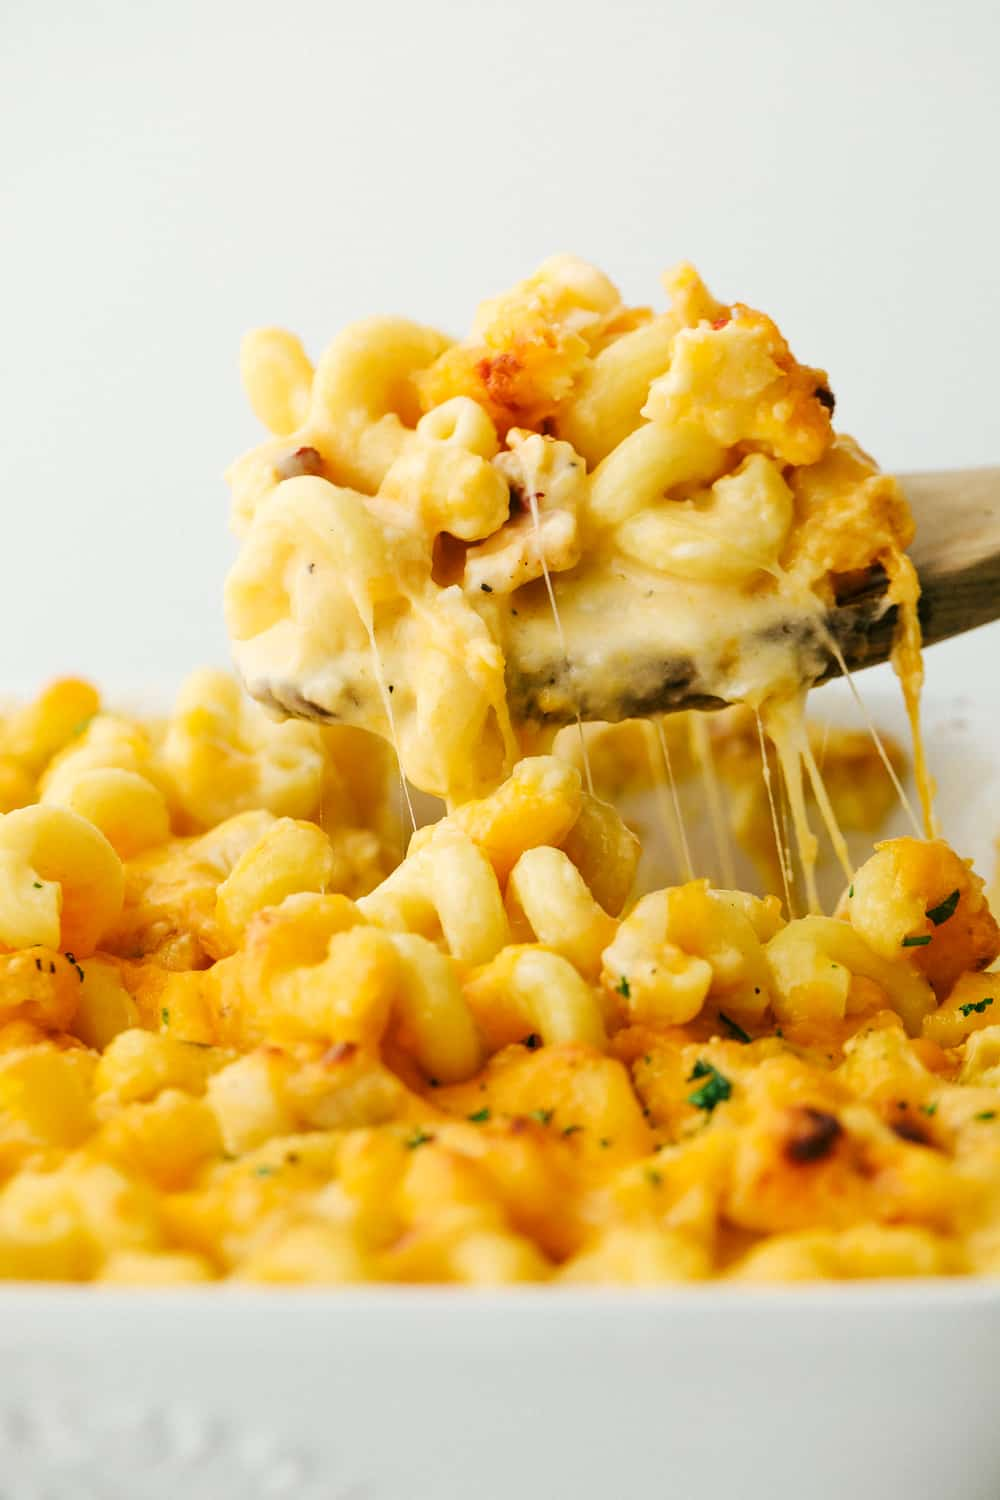 Cheesy Lobster Mac and Cheese being scooped out of a white dish.